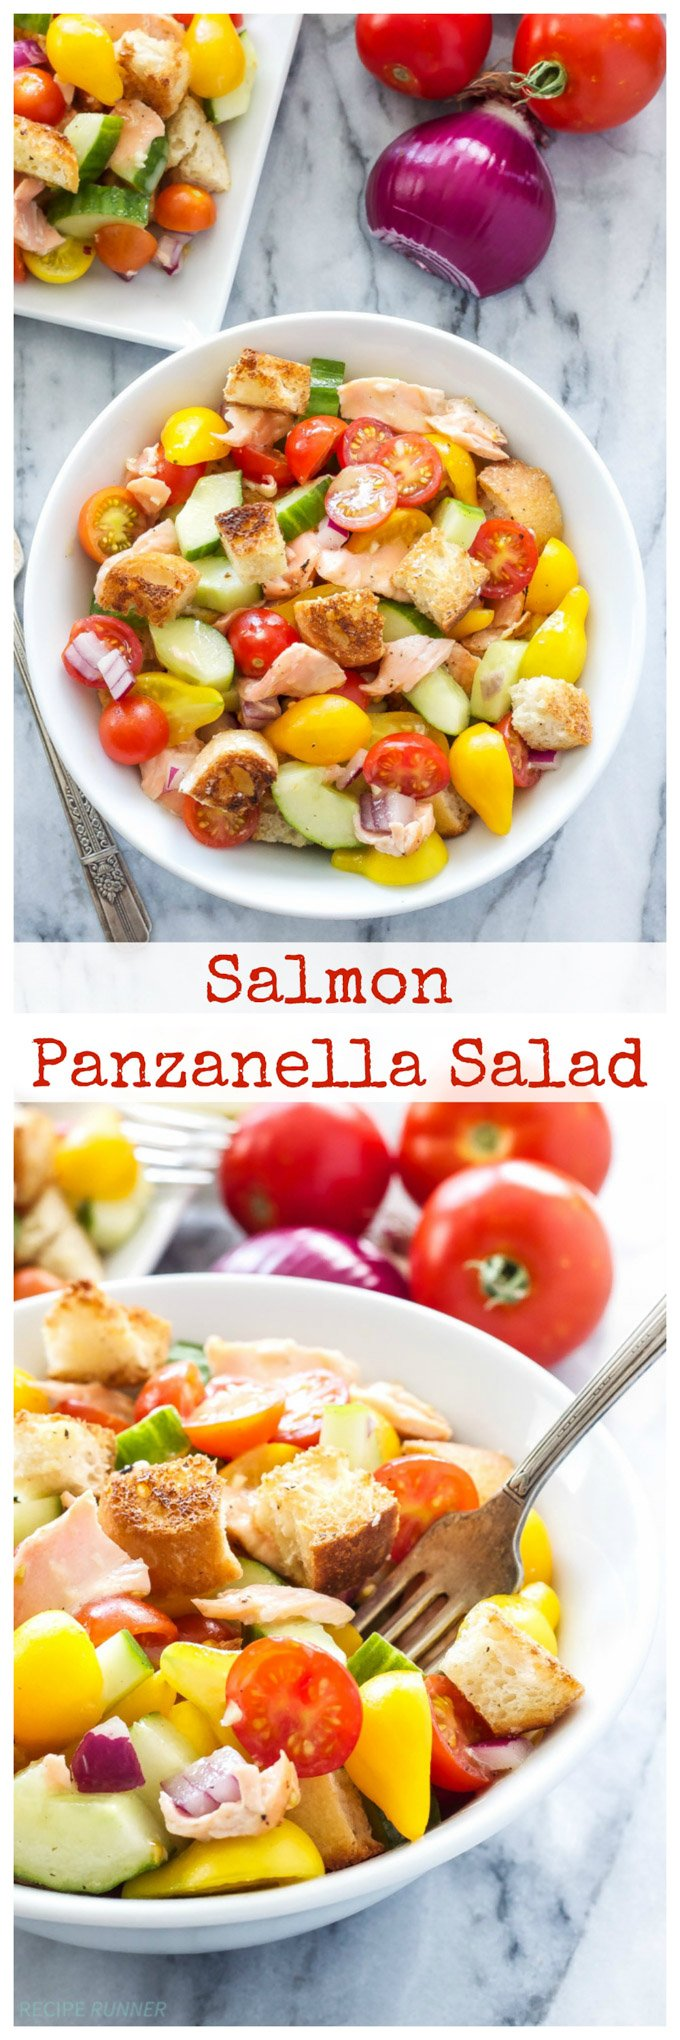 Salmon Panzanella Salad | Tomatoes, cucumbers, crusty bread, and grilled salmon make this panzanella the perfect summer salad!